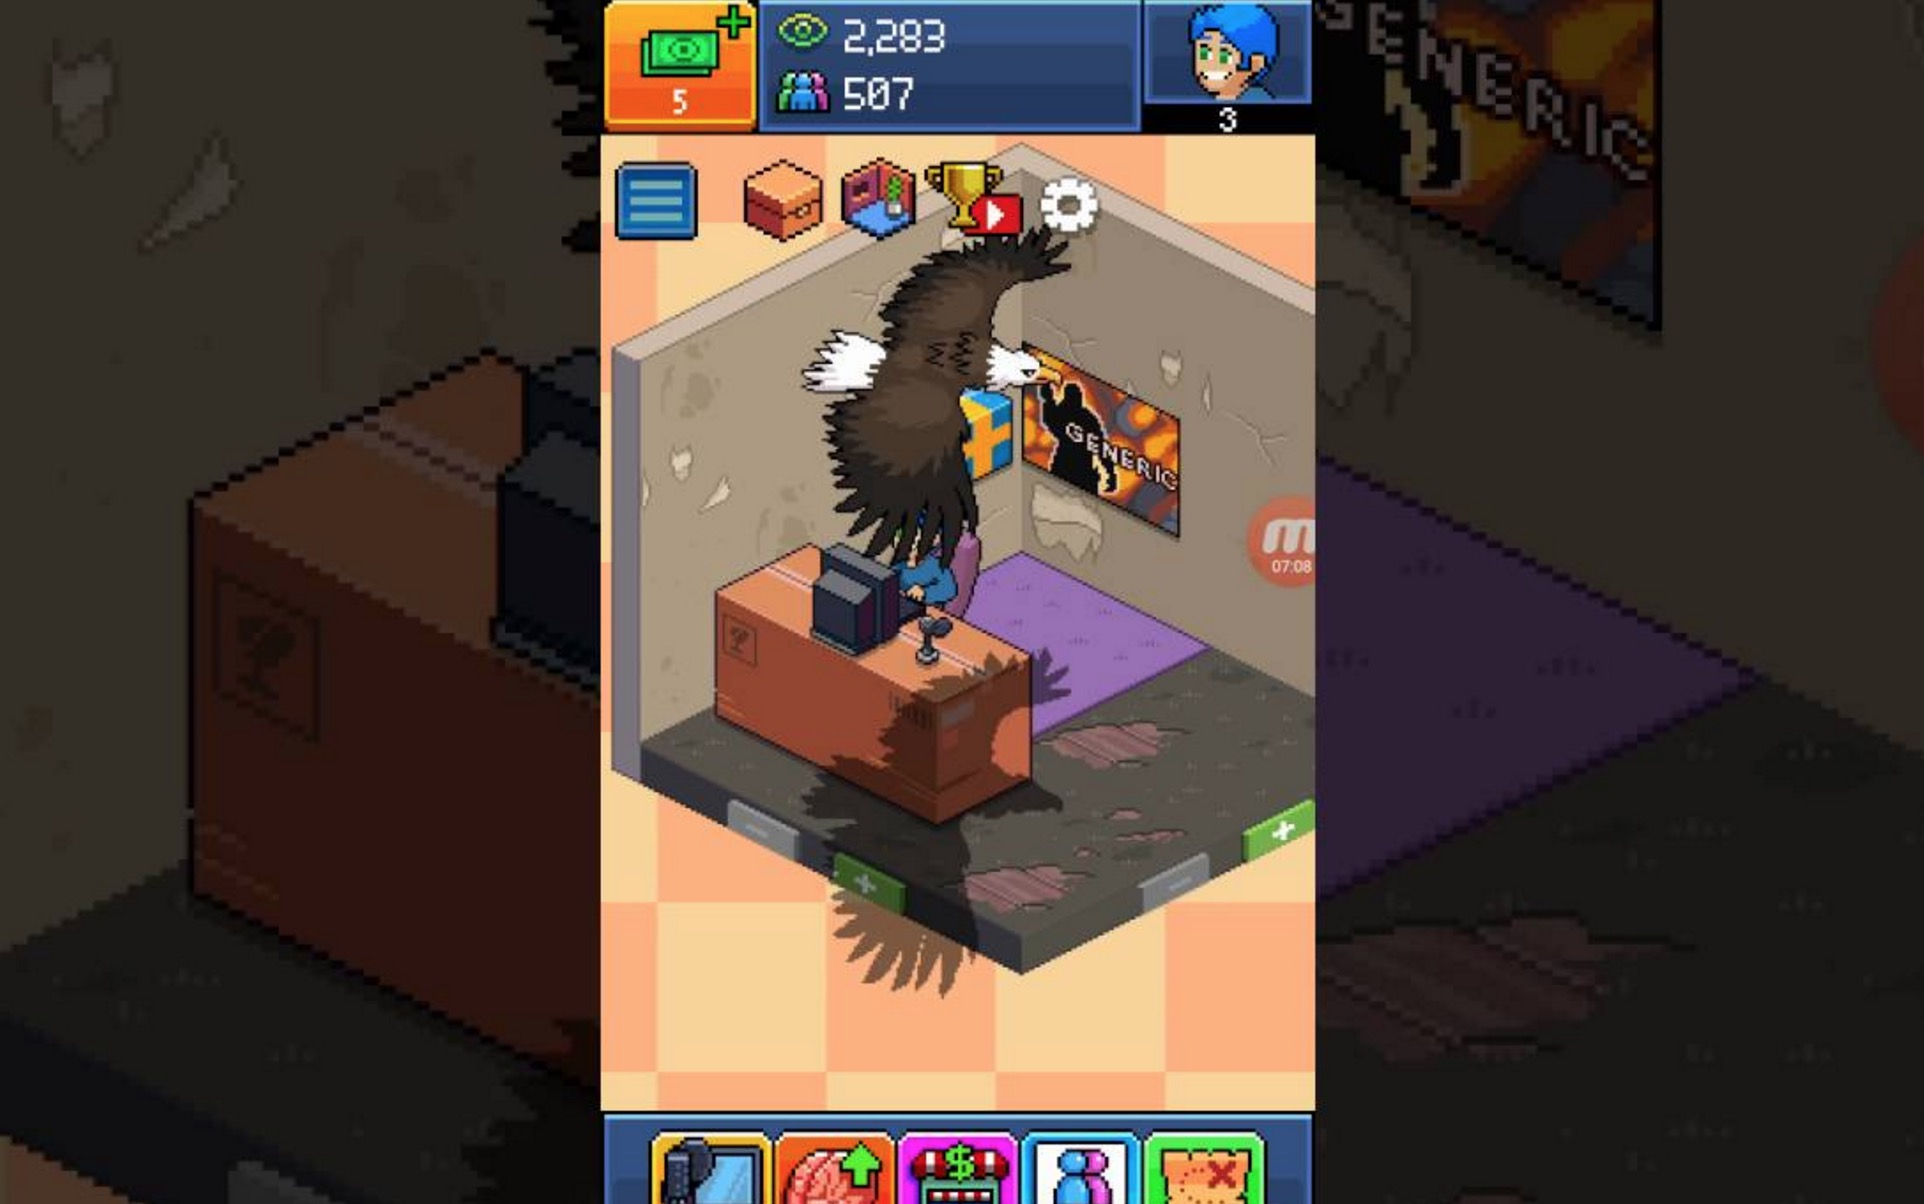 Tuber Simulator Room Ideas screen-shot-2016-10-12-at-10-44-